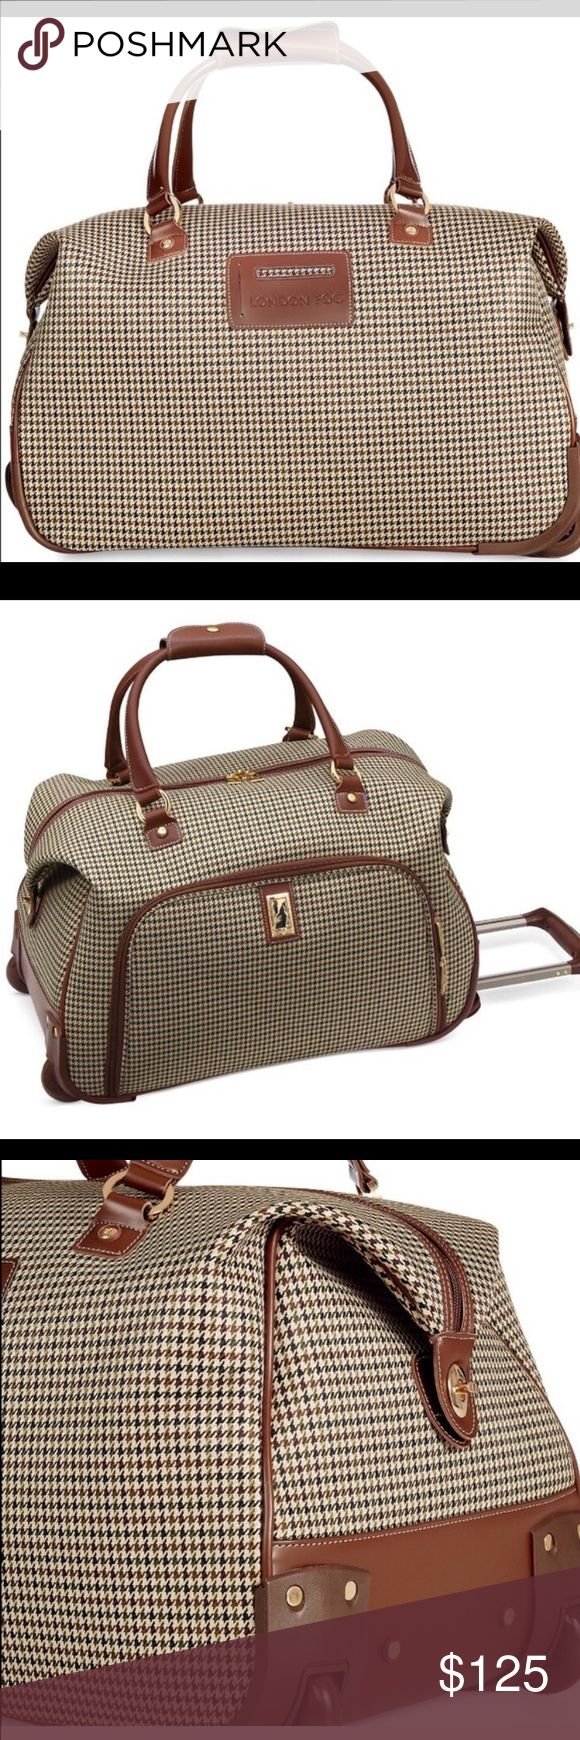 Handcarry Luggage classy & elegant, cool houndstooth exterior rolls effortlessly along on inline skate wheels and open to reveal a sized just right fully line interior. Polyester imported. Dual carry handles. Hidden looking aluminum handle system with channels for added strength. Wide strength prevent tipping. Just used once only. Weight 5lbs. Meets carry on requirement for most major airlines pet free home: guaranteed clean other Bags Travel Bags